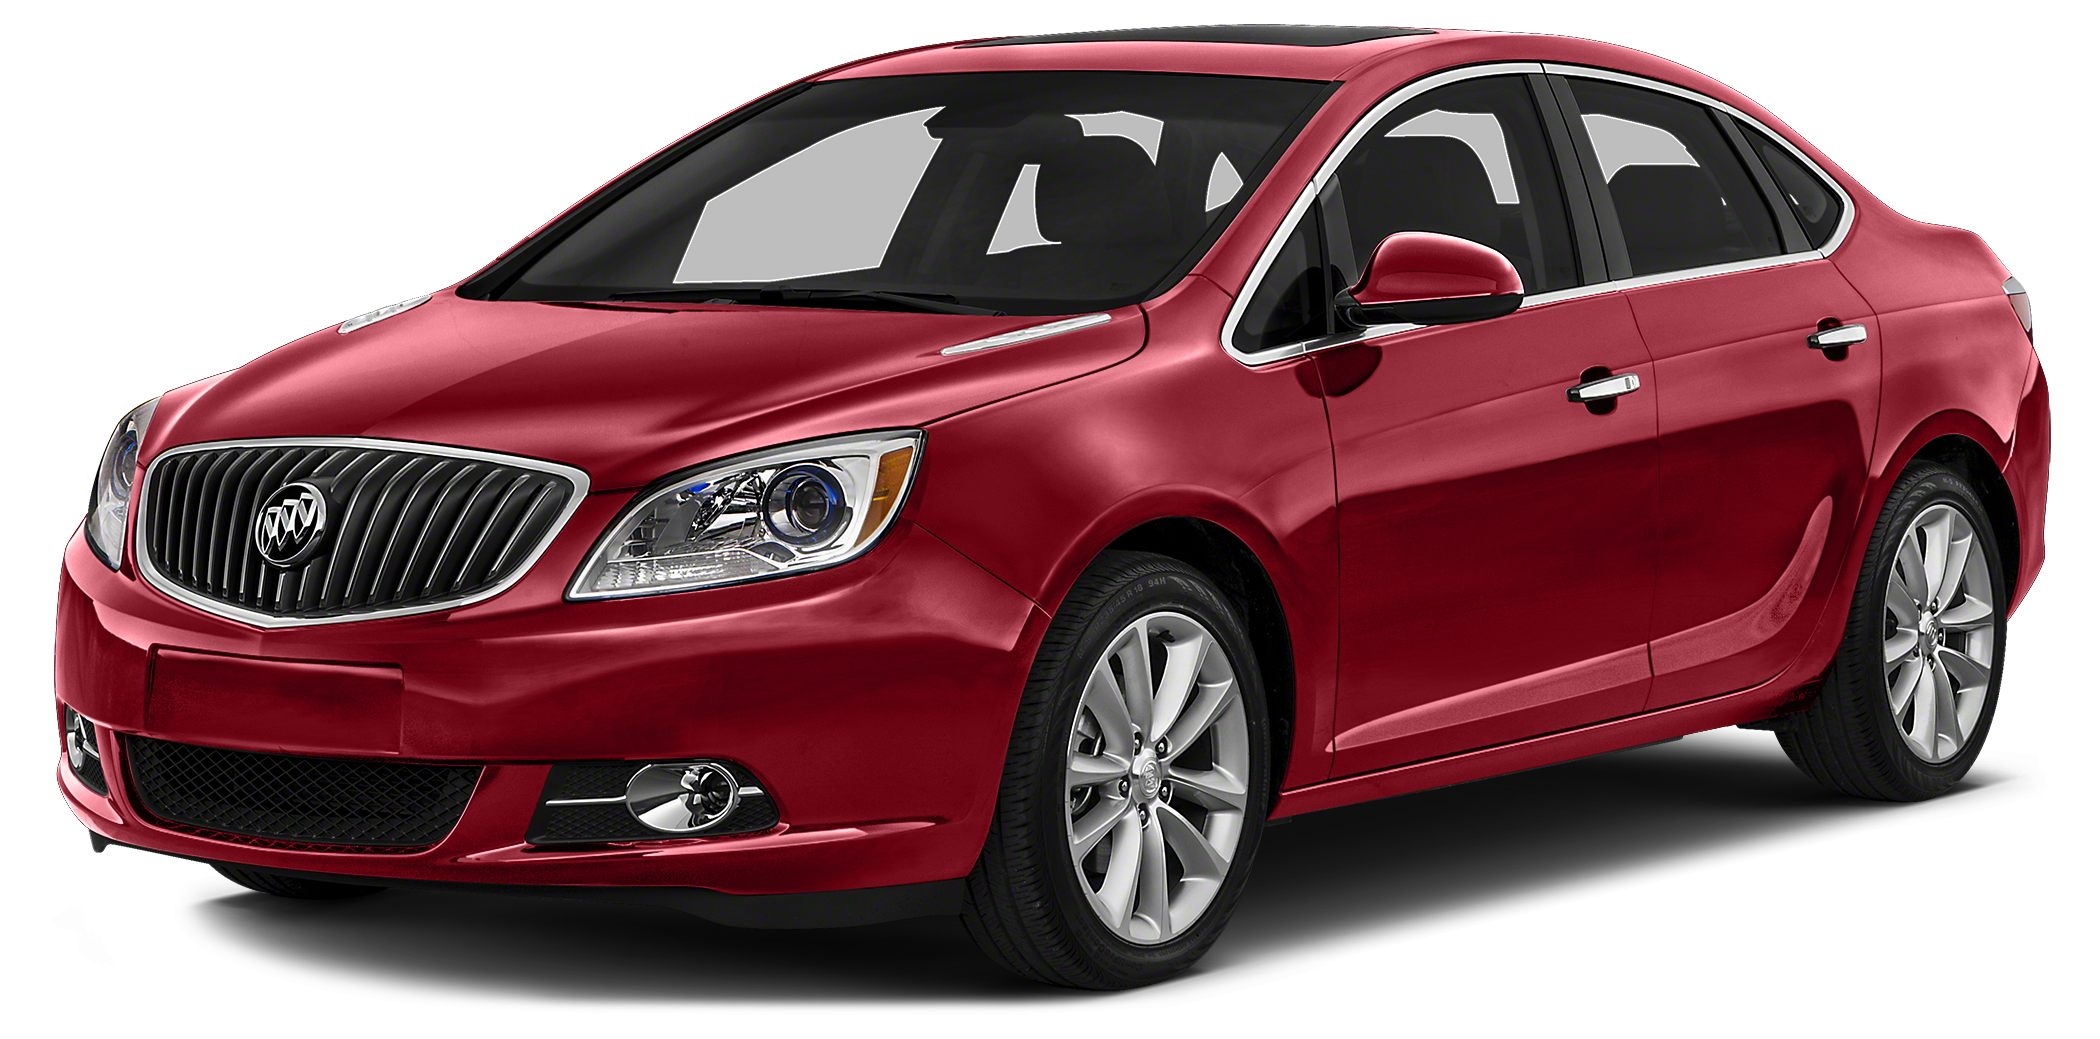 2016 Buick Verano Base The Buick Verano luxury sedan is as elegant as it is beautiful Veranos si